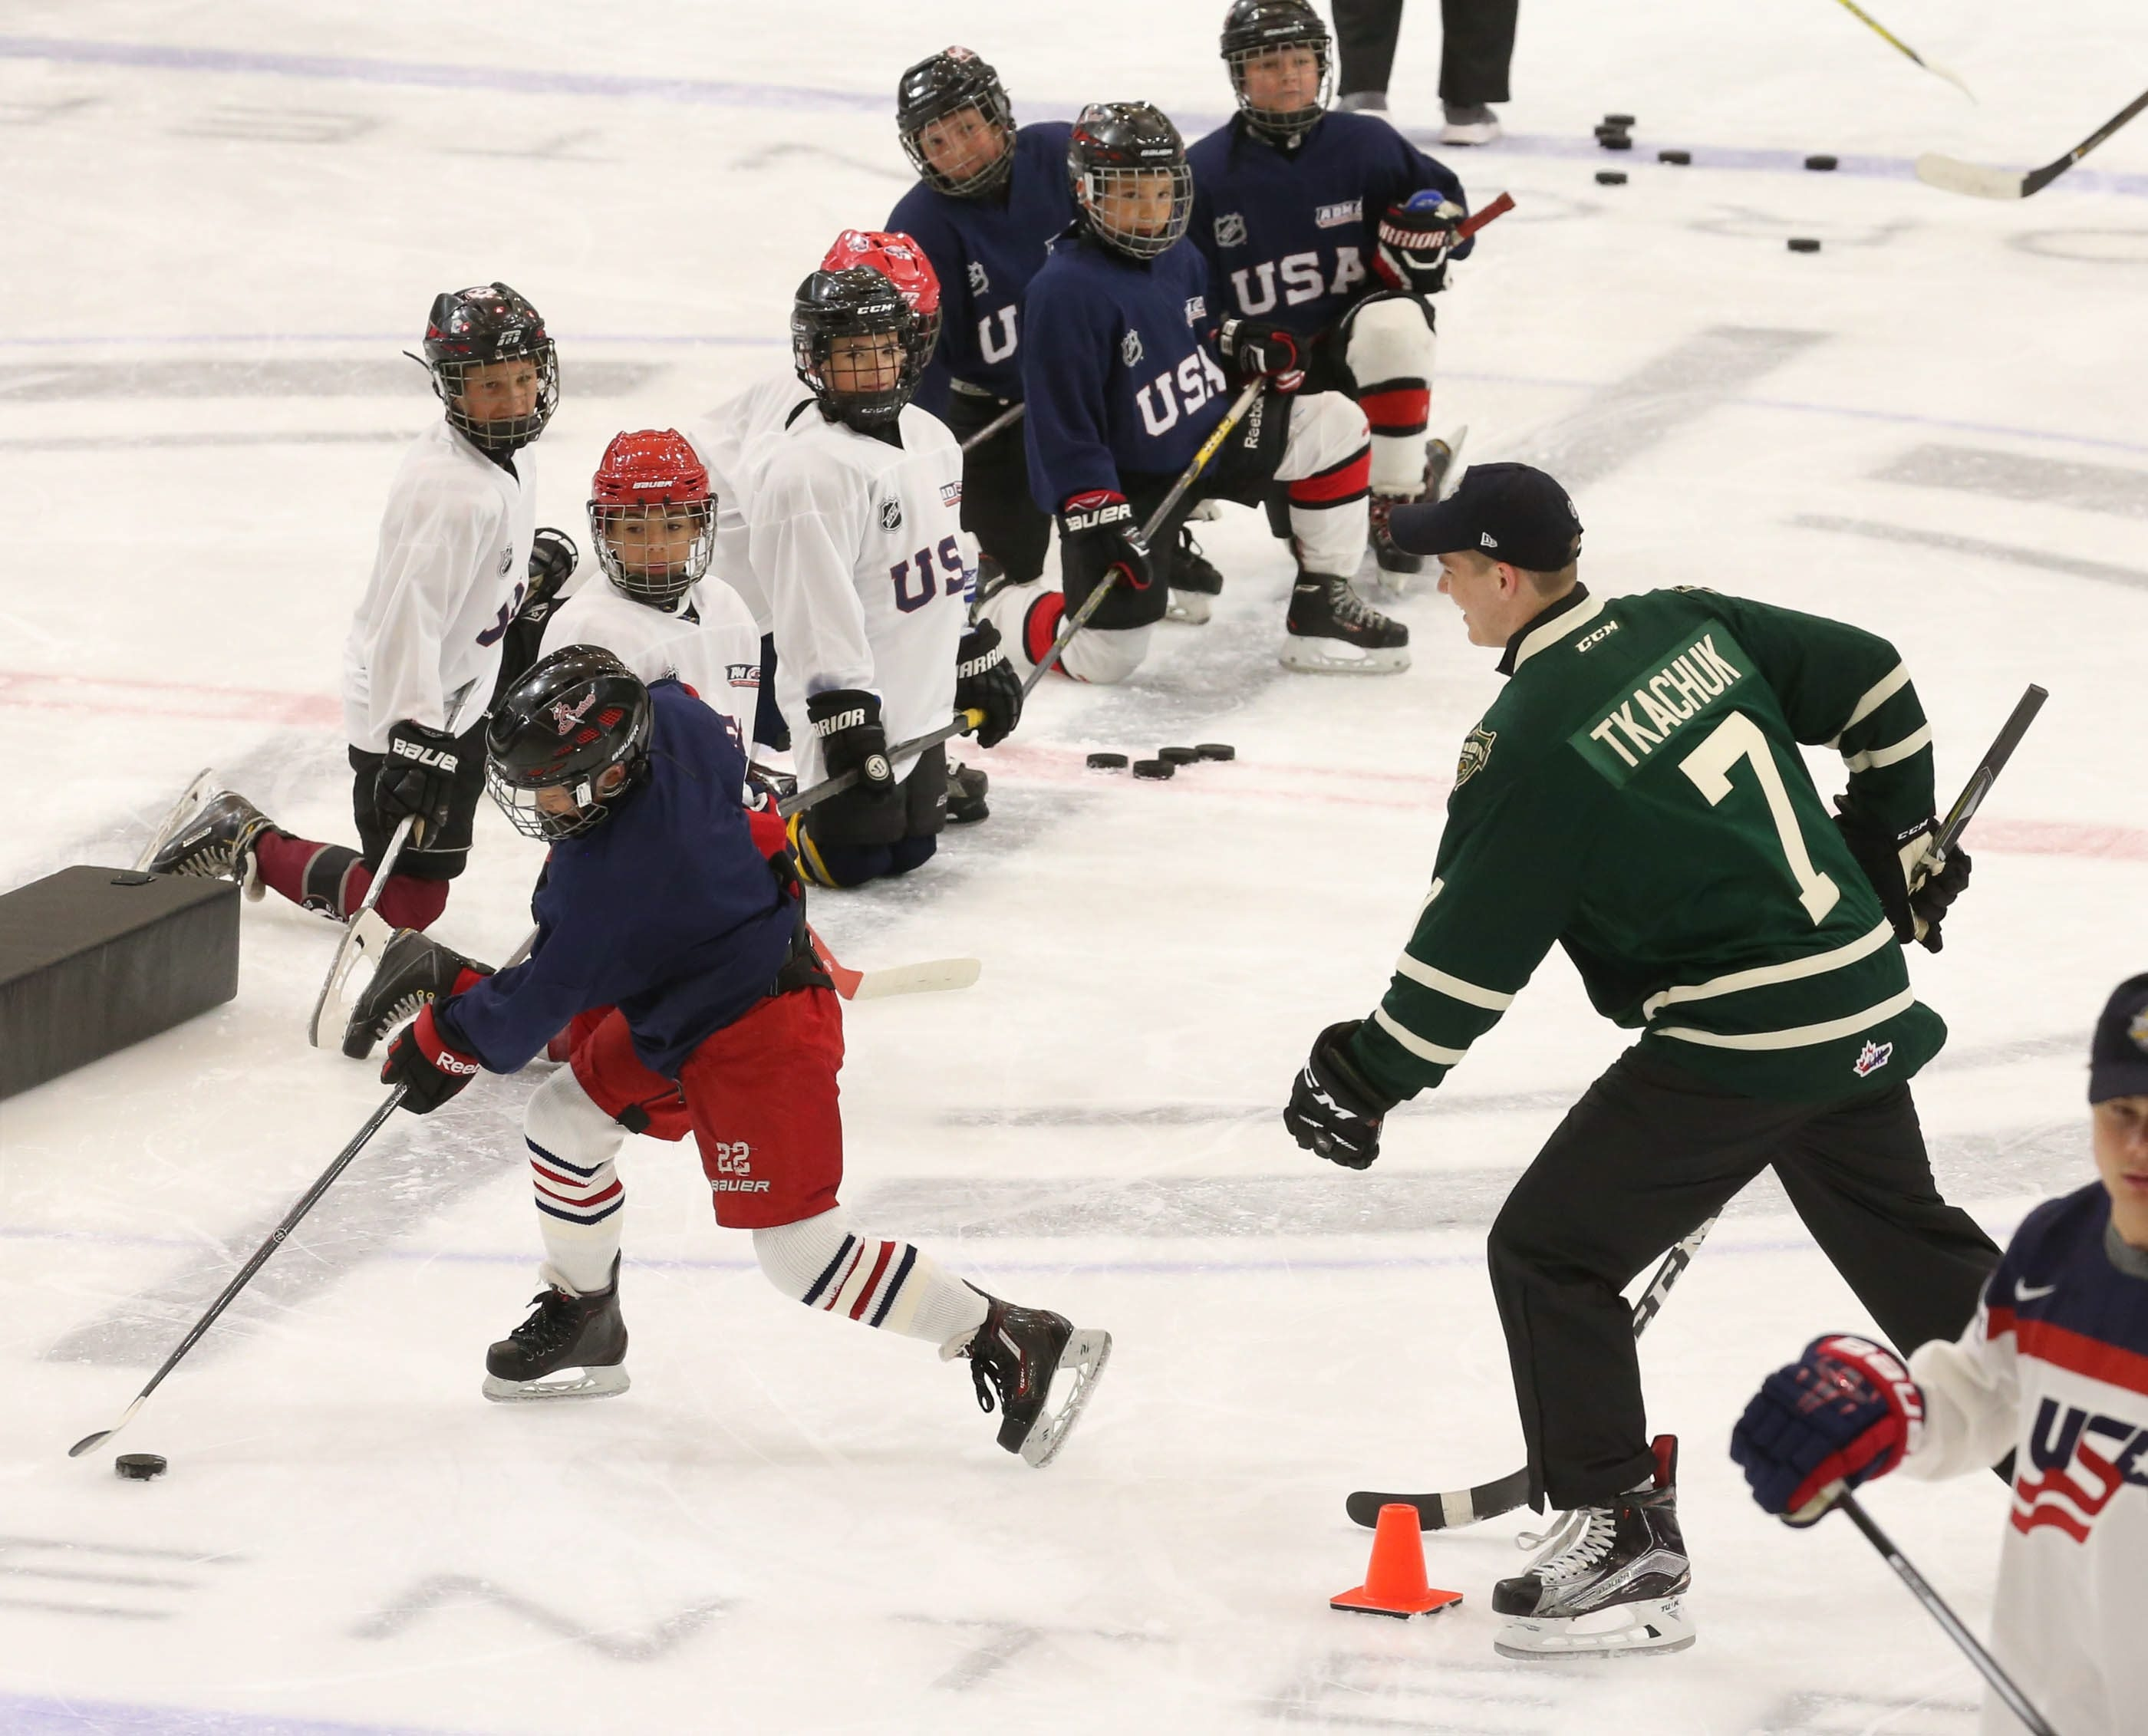 Matthew Tkachuk was among the NHL's top draft prospects who participated in a hockey clinic at HarborCenter Thursday.